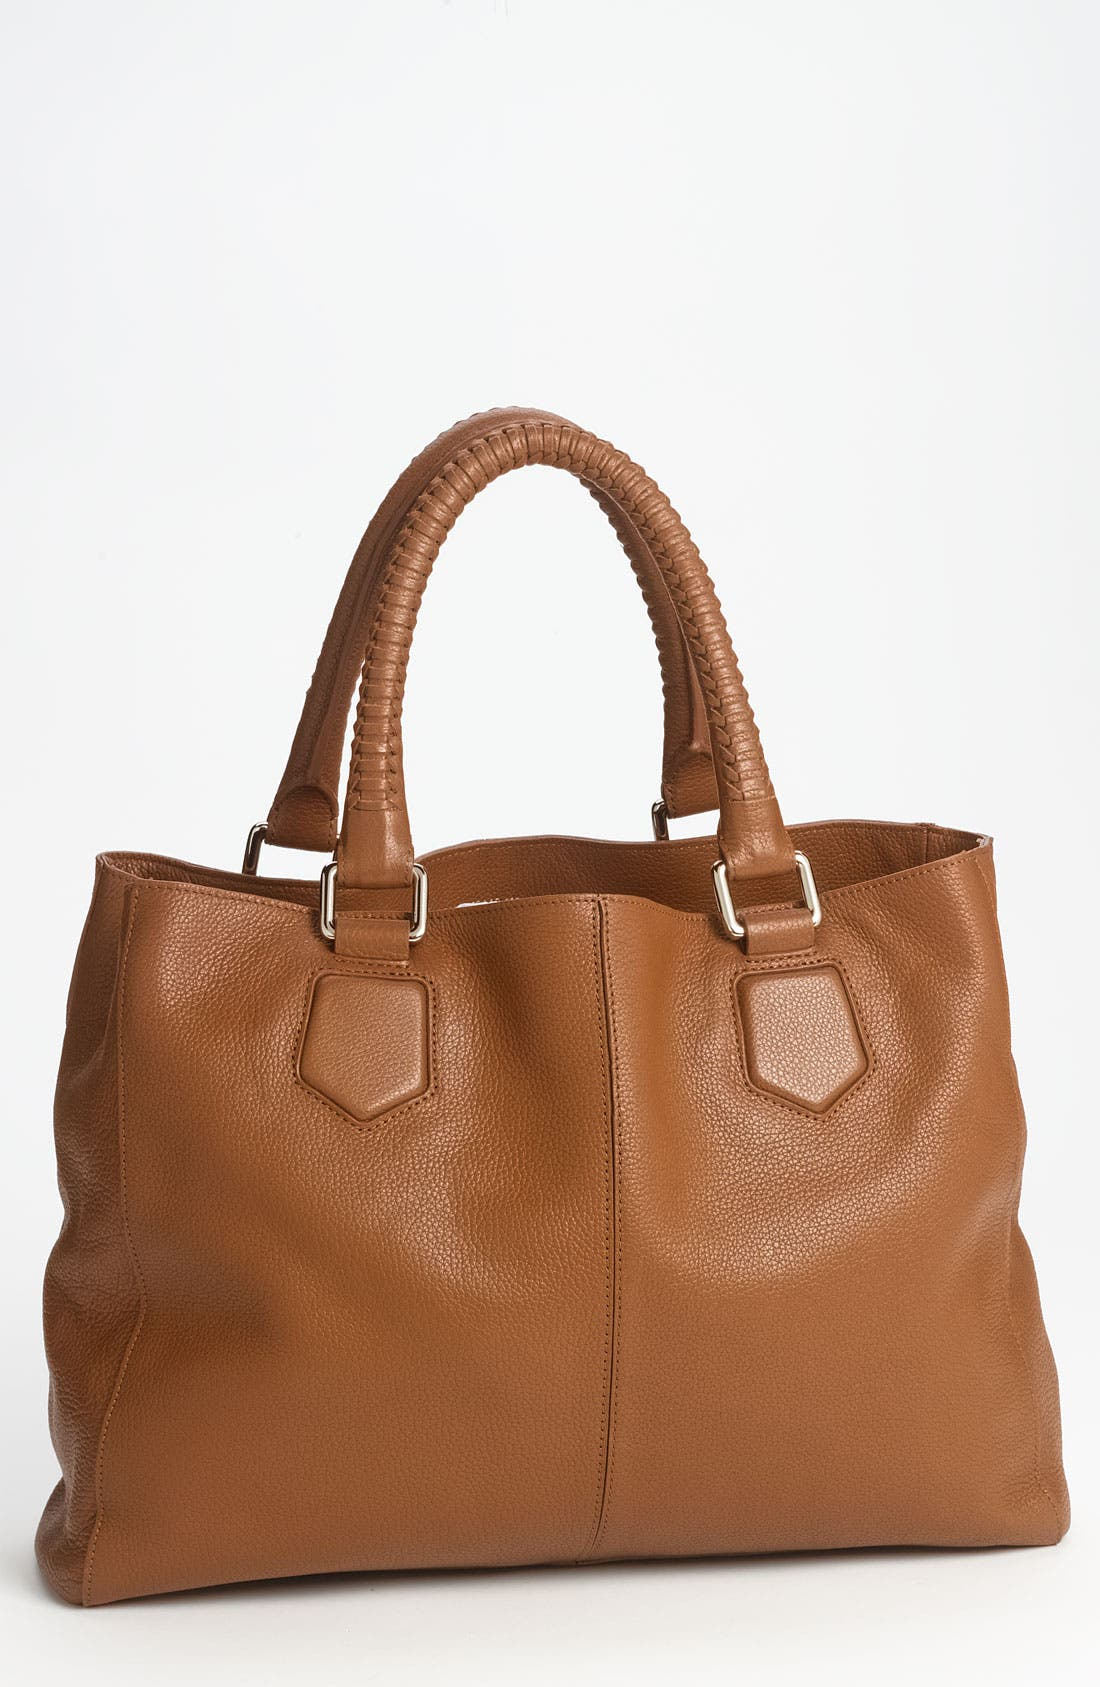 Main Image - Lafayette 148 New York 'Mila' Leather Shoulder Bag